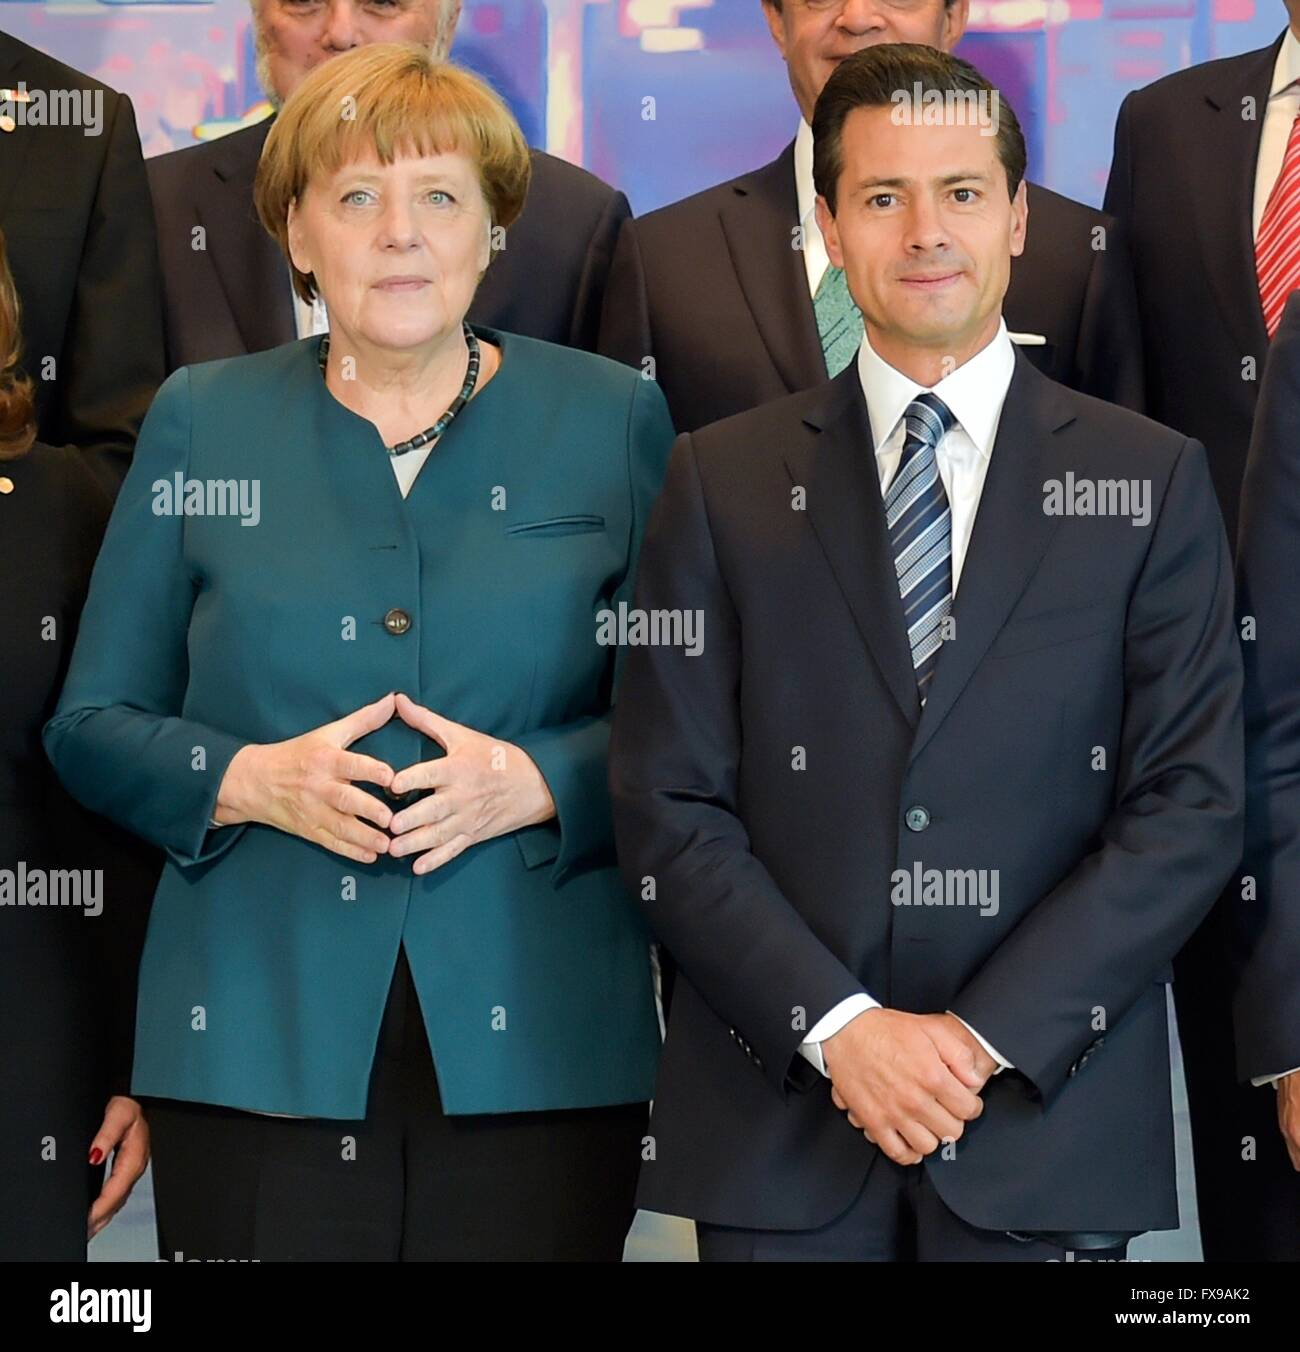 German Chancellor Angela Merkel stands with Mexican President Enrique Pena Nieto for a group photo following expanded - Stock Image